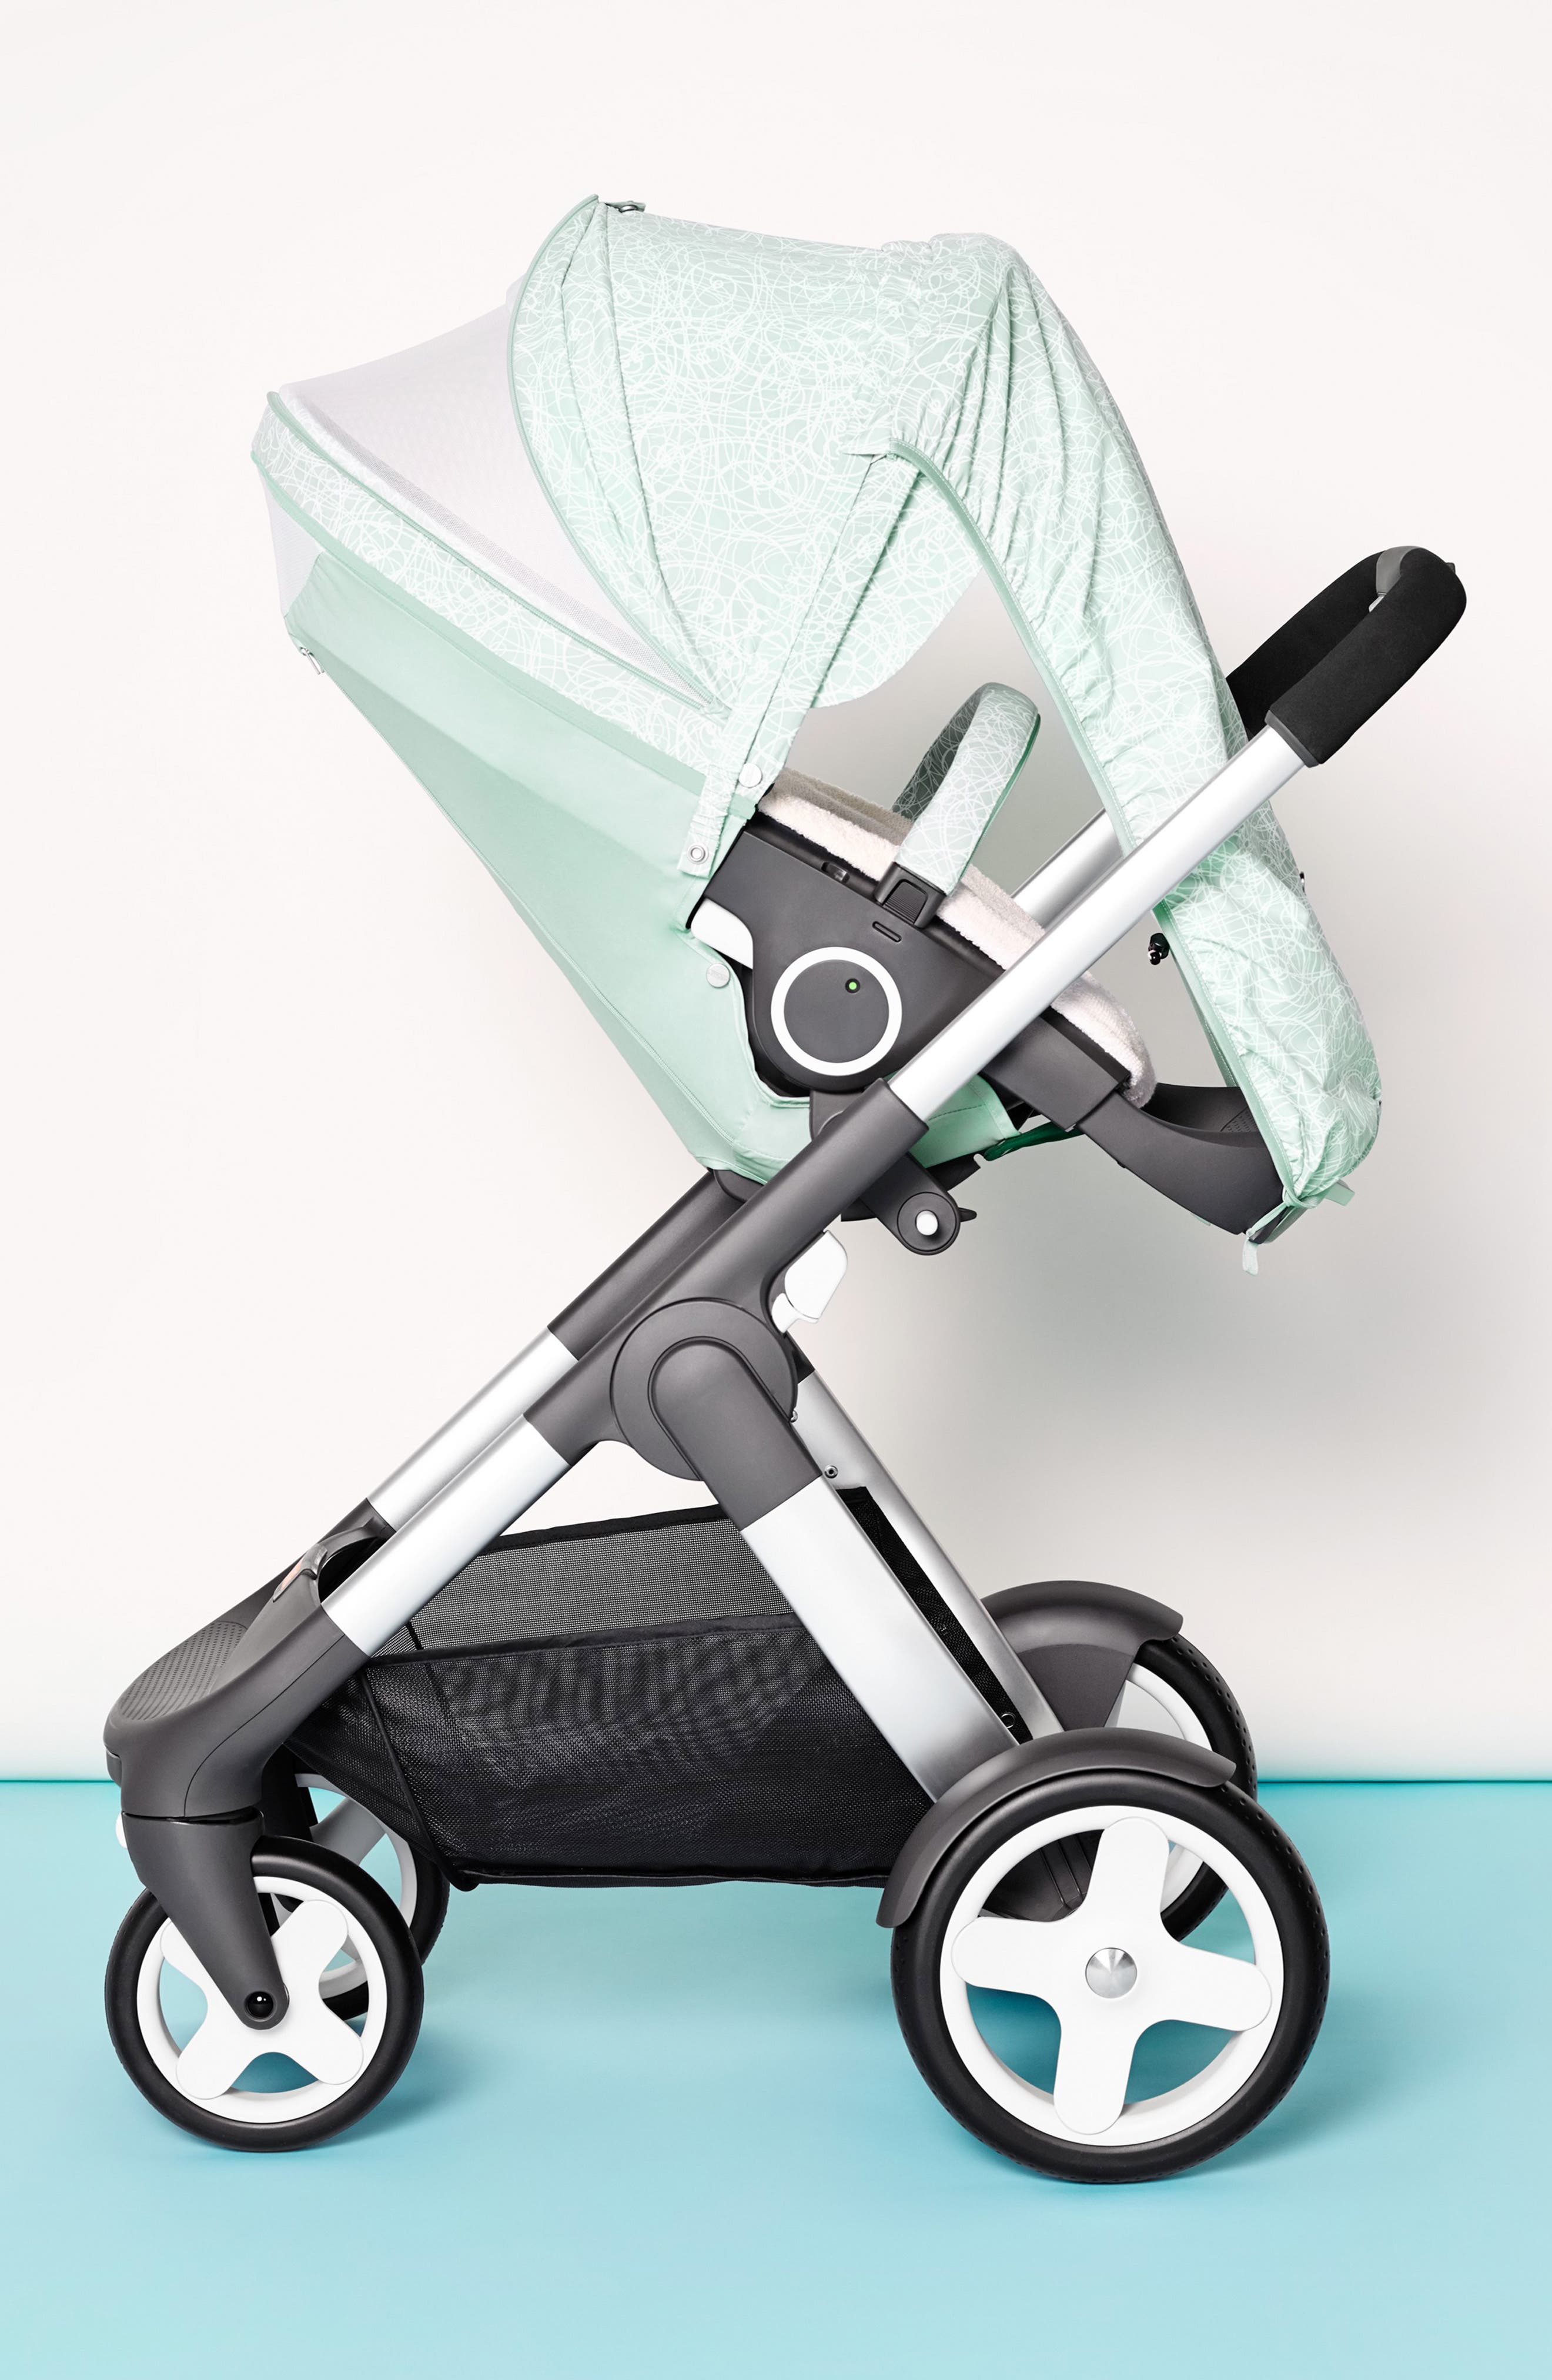 Baby 'Xplory<sup>®</sup> Stroller Summer Kit' Shade Set,                             Alternate thumbnail 7, color,                             SALTY BLUE